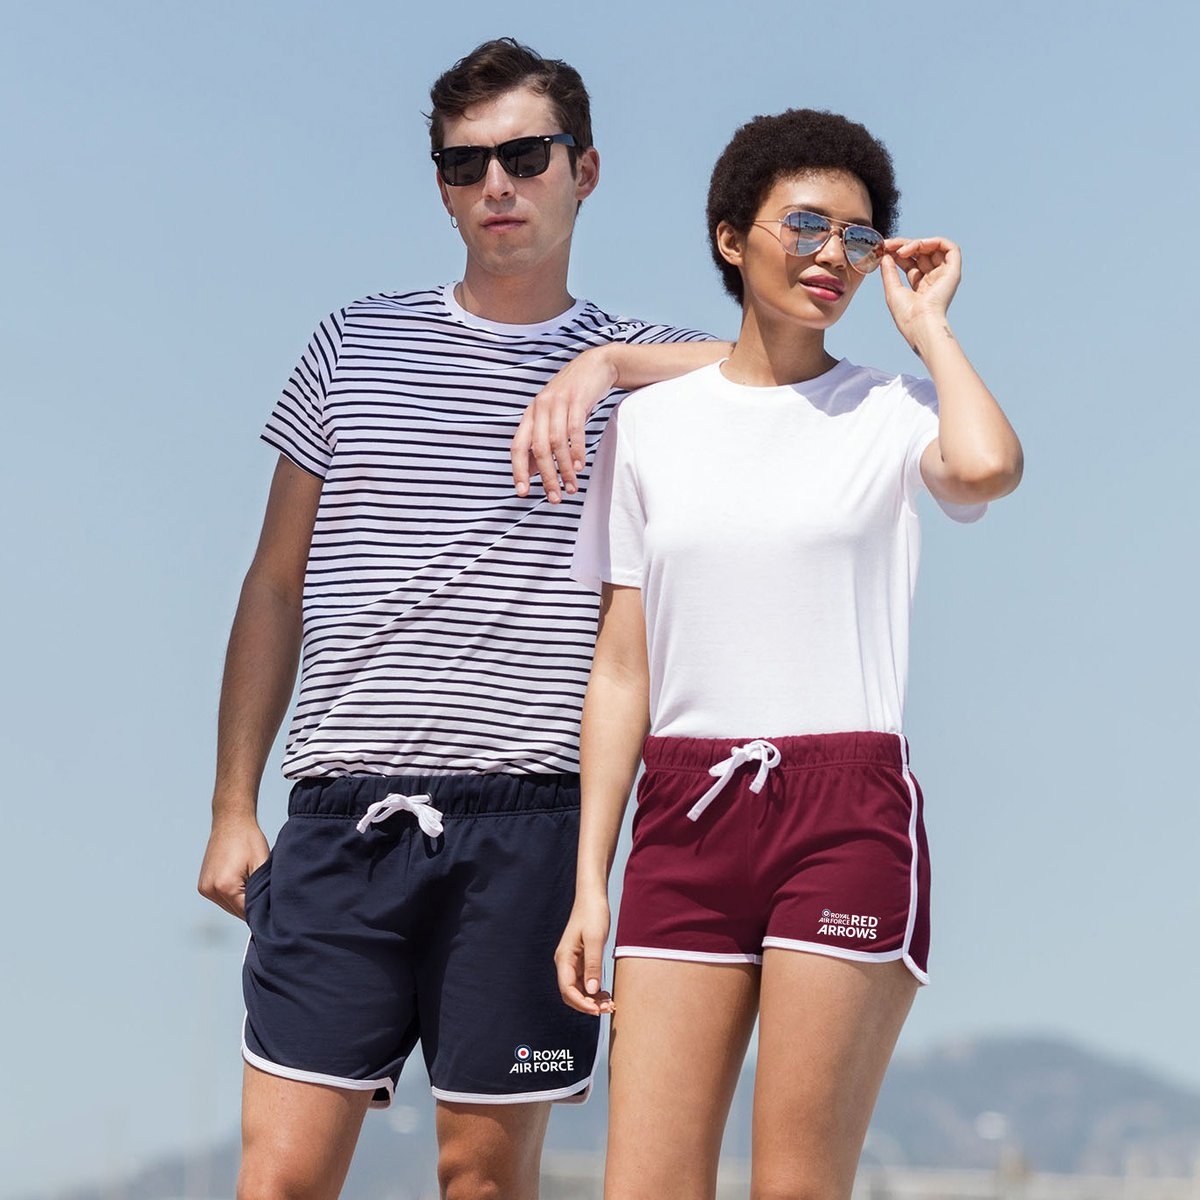 Get set for the warmer days ahead with our Official RAF shorts for both men and women! We have a wide collection of colours and styles available, so you'll be sure to find your perfect pair. 😎🌞  https://t.co/RPrsevf7Ti  #raf #royalairforce #redarrows #aviation #summershorts https://t.co/Zy3tkKgsgi